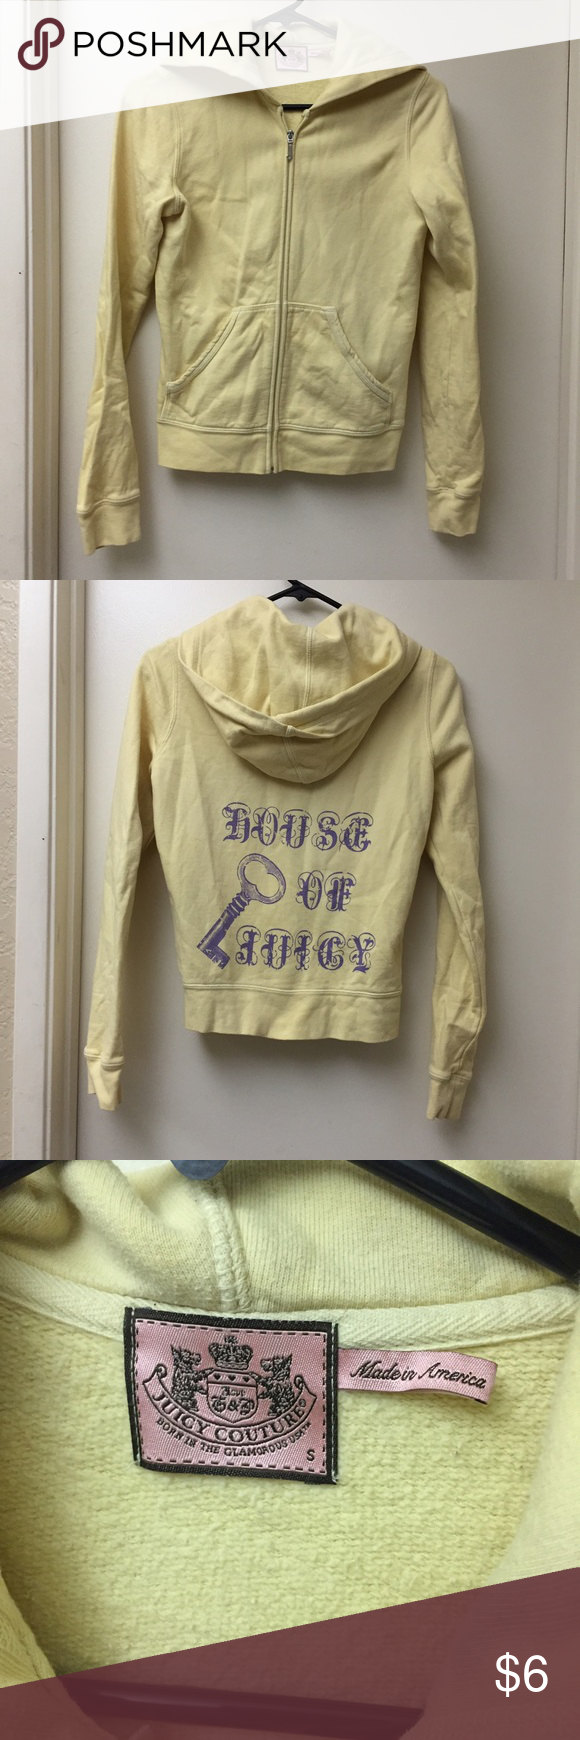 30% off bundles✨ Juicy Jacket Yellow with purple writing Juicy Couture zip up hoodie. In good condition, small discoloration on back right shoulder as shown in picture. Size small Juicy Couture Jackets & Coats